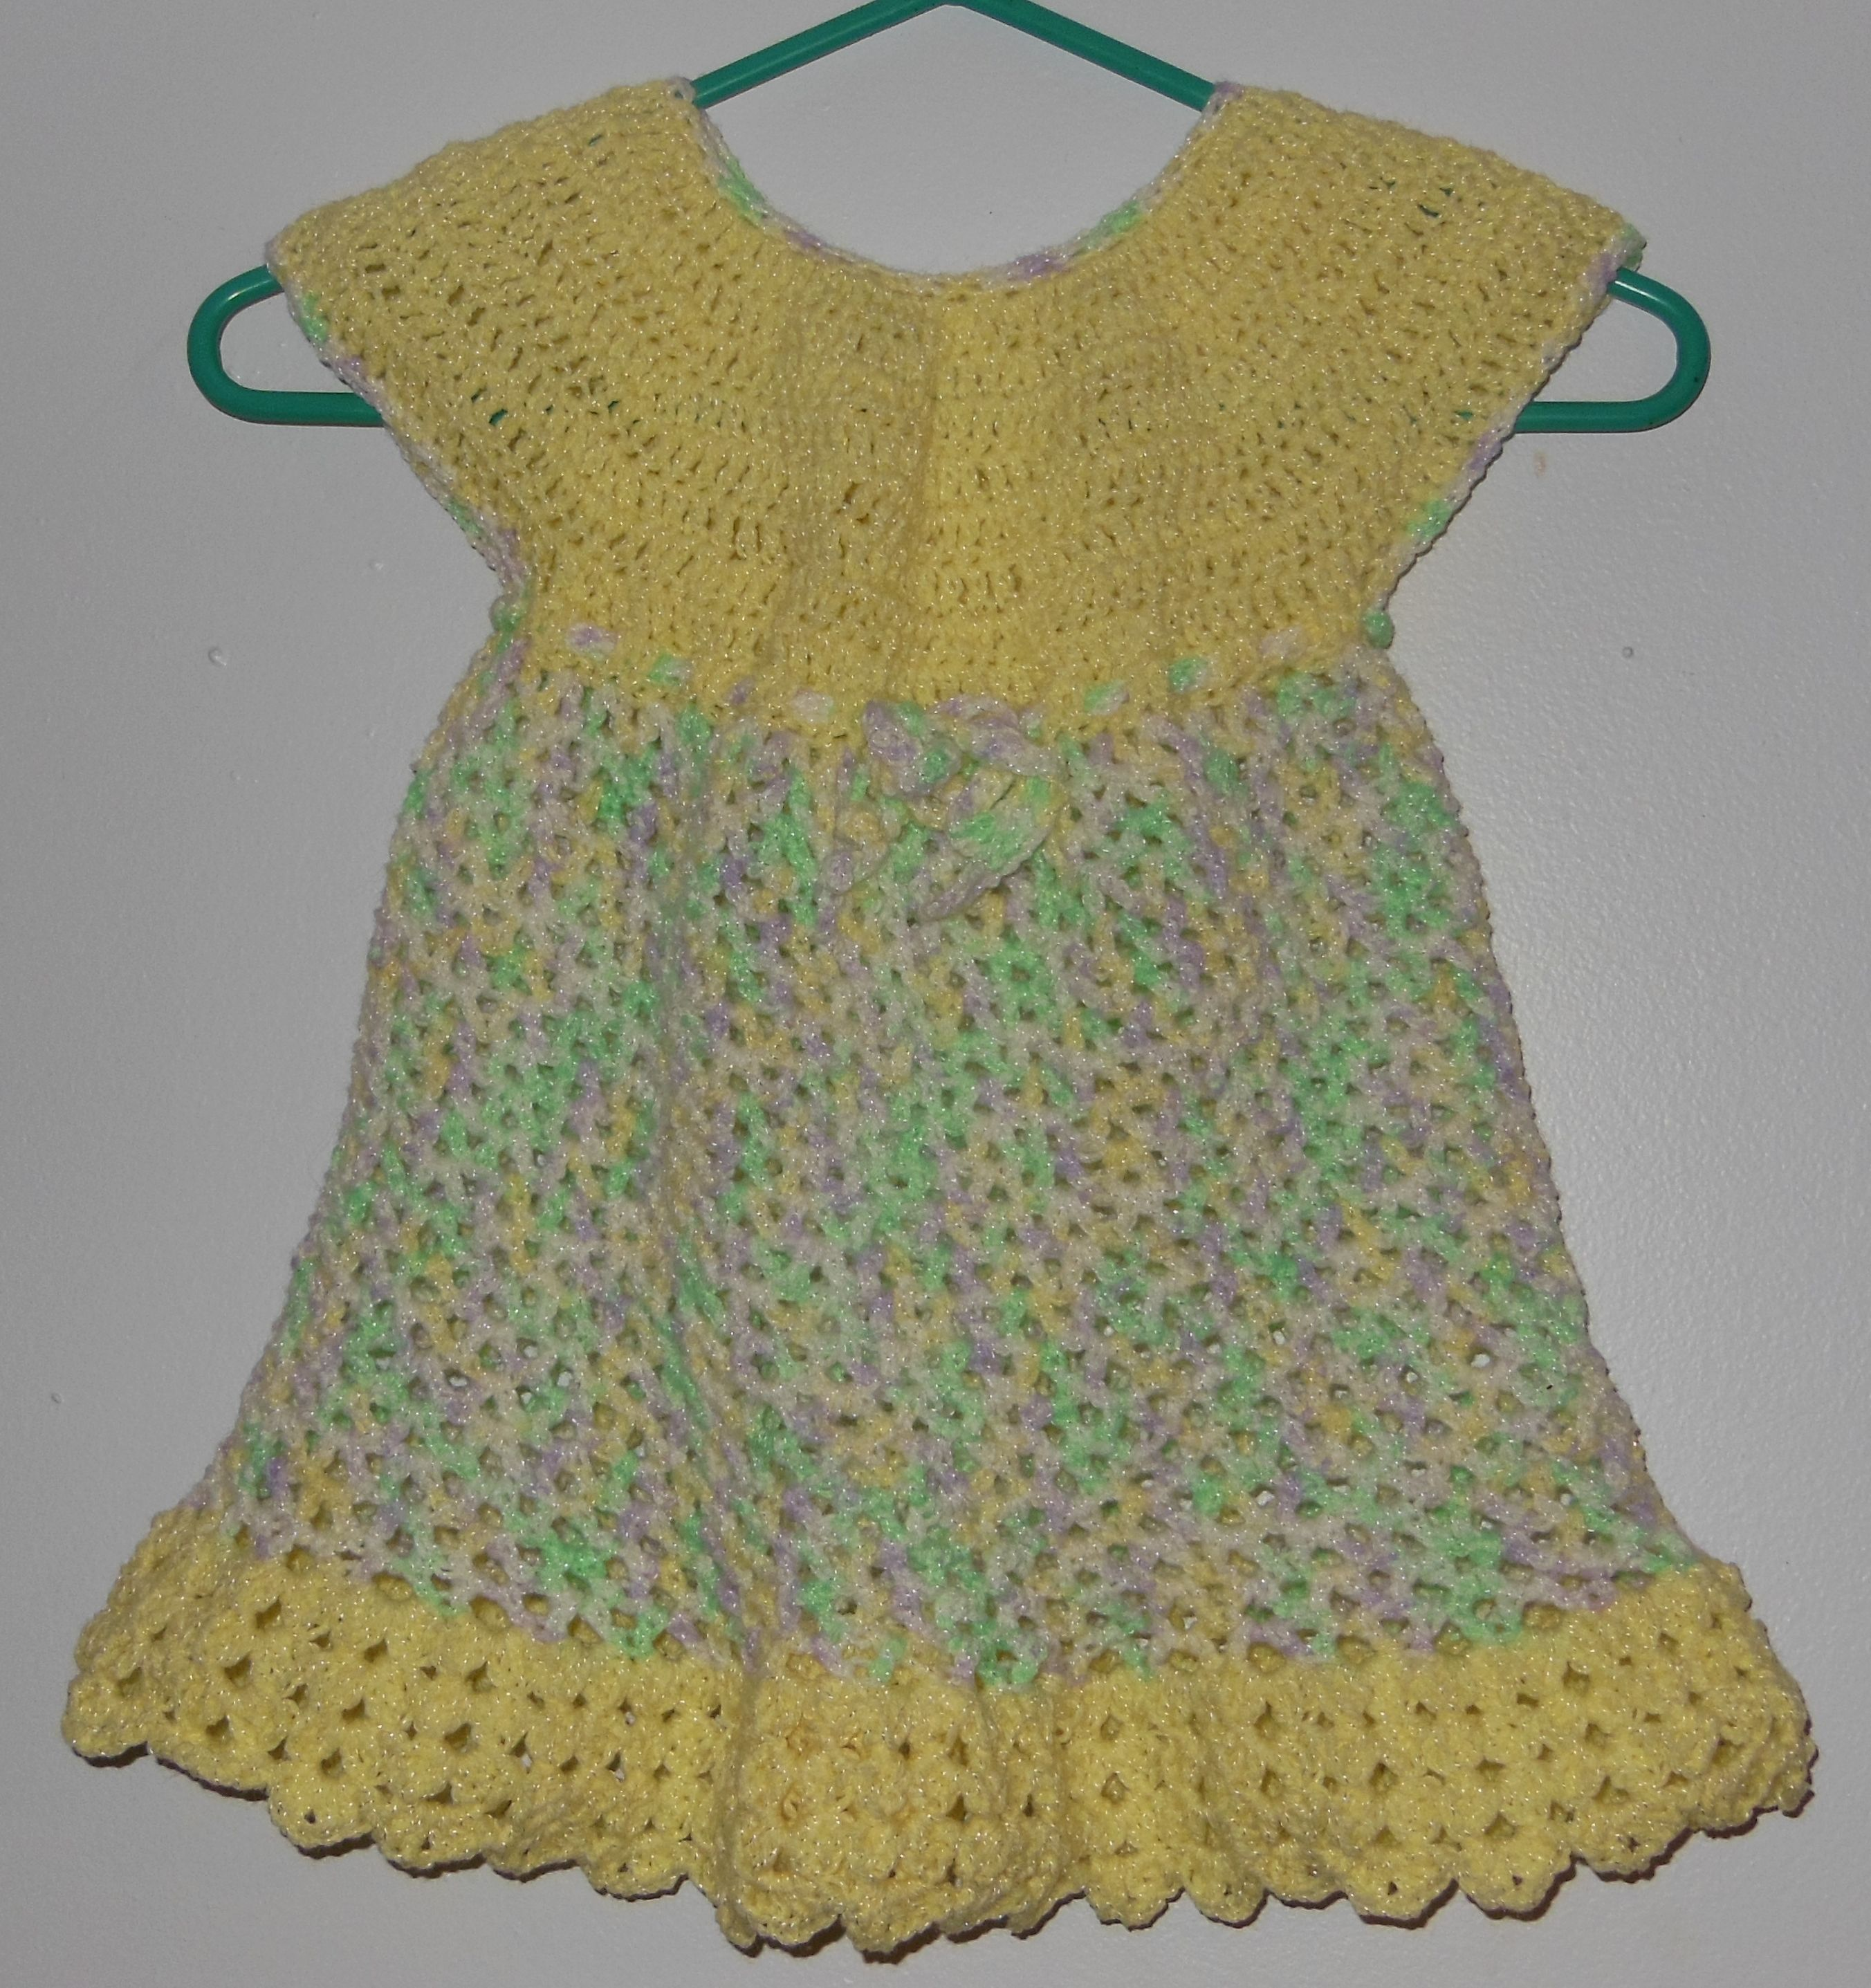 Dress I made for one of my 2 year old nieces using this pattern http://www.redheart.com/files/patterns/pdf/LW2900.pdf